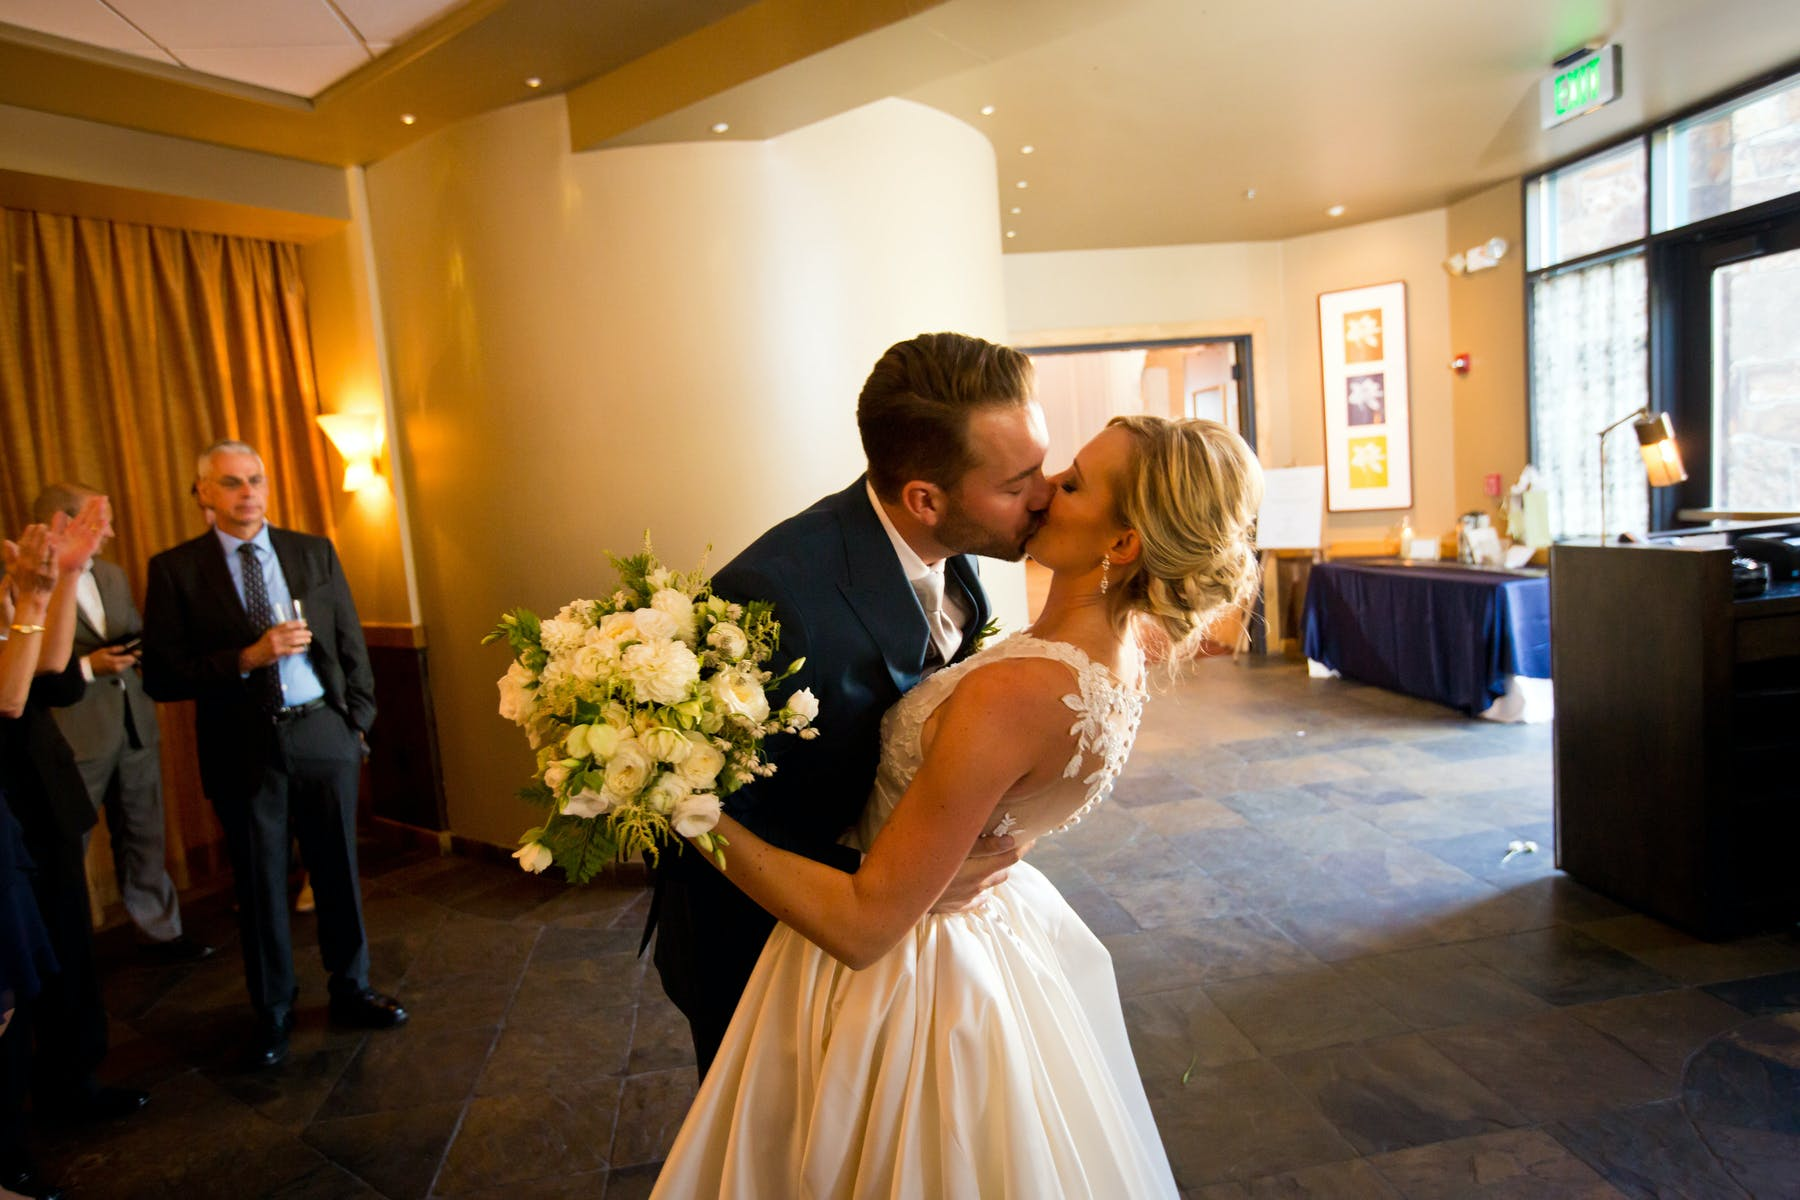 Larkspur Wedding Venue Vail Colorado Mountain Patio Bar Bride and Groom Kiss